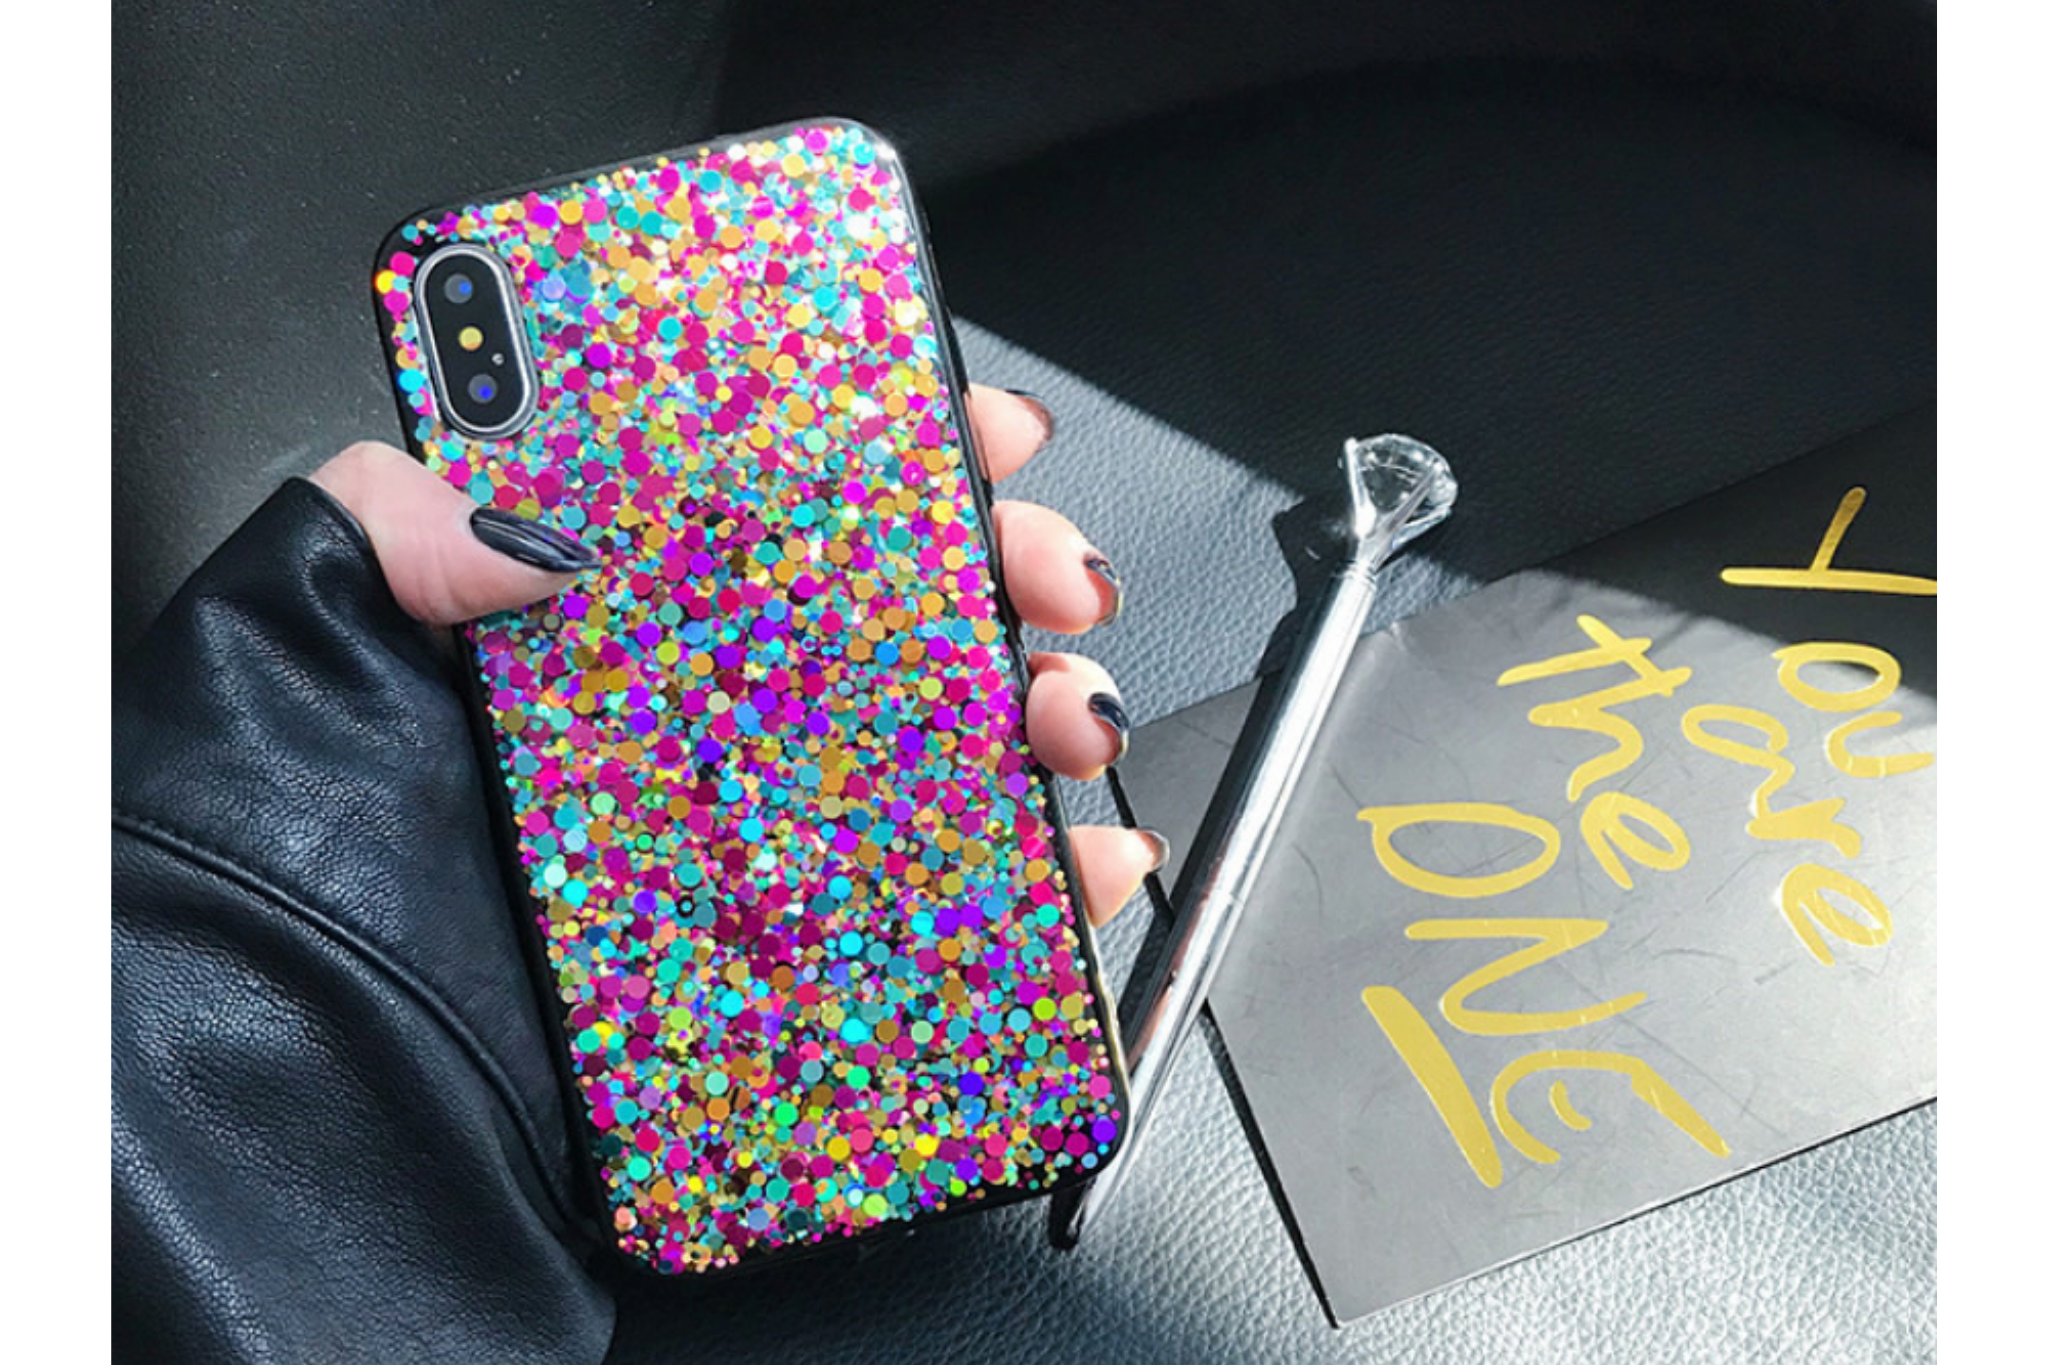 Smartphonehoesje iPhone 11 Pro | Bling met glitter | Multicolor